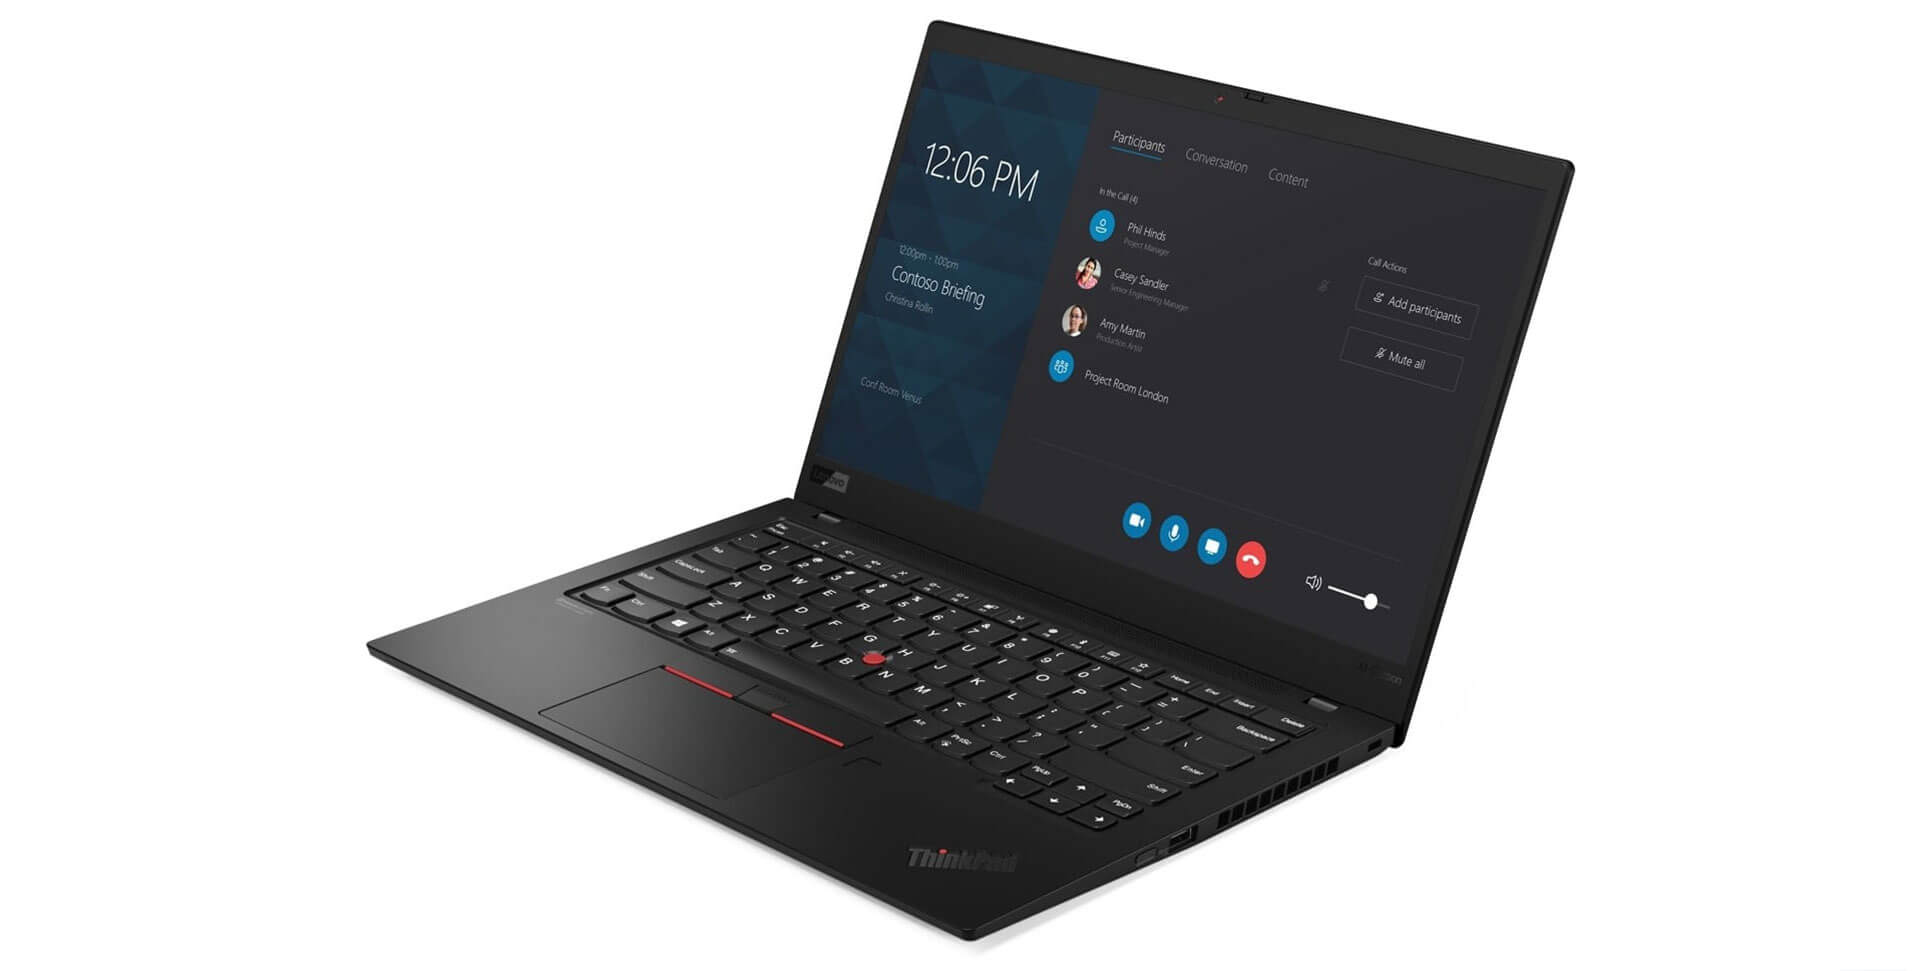 Lenovo ThinkPad X1 Carbon Gen 7 - 2019